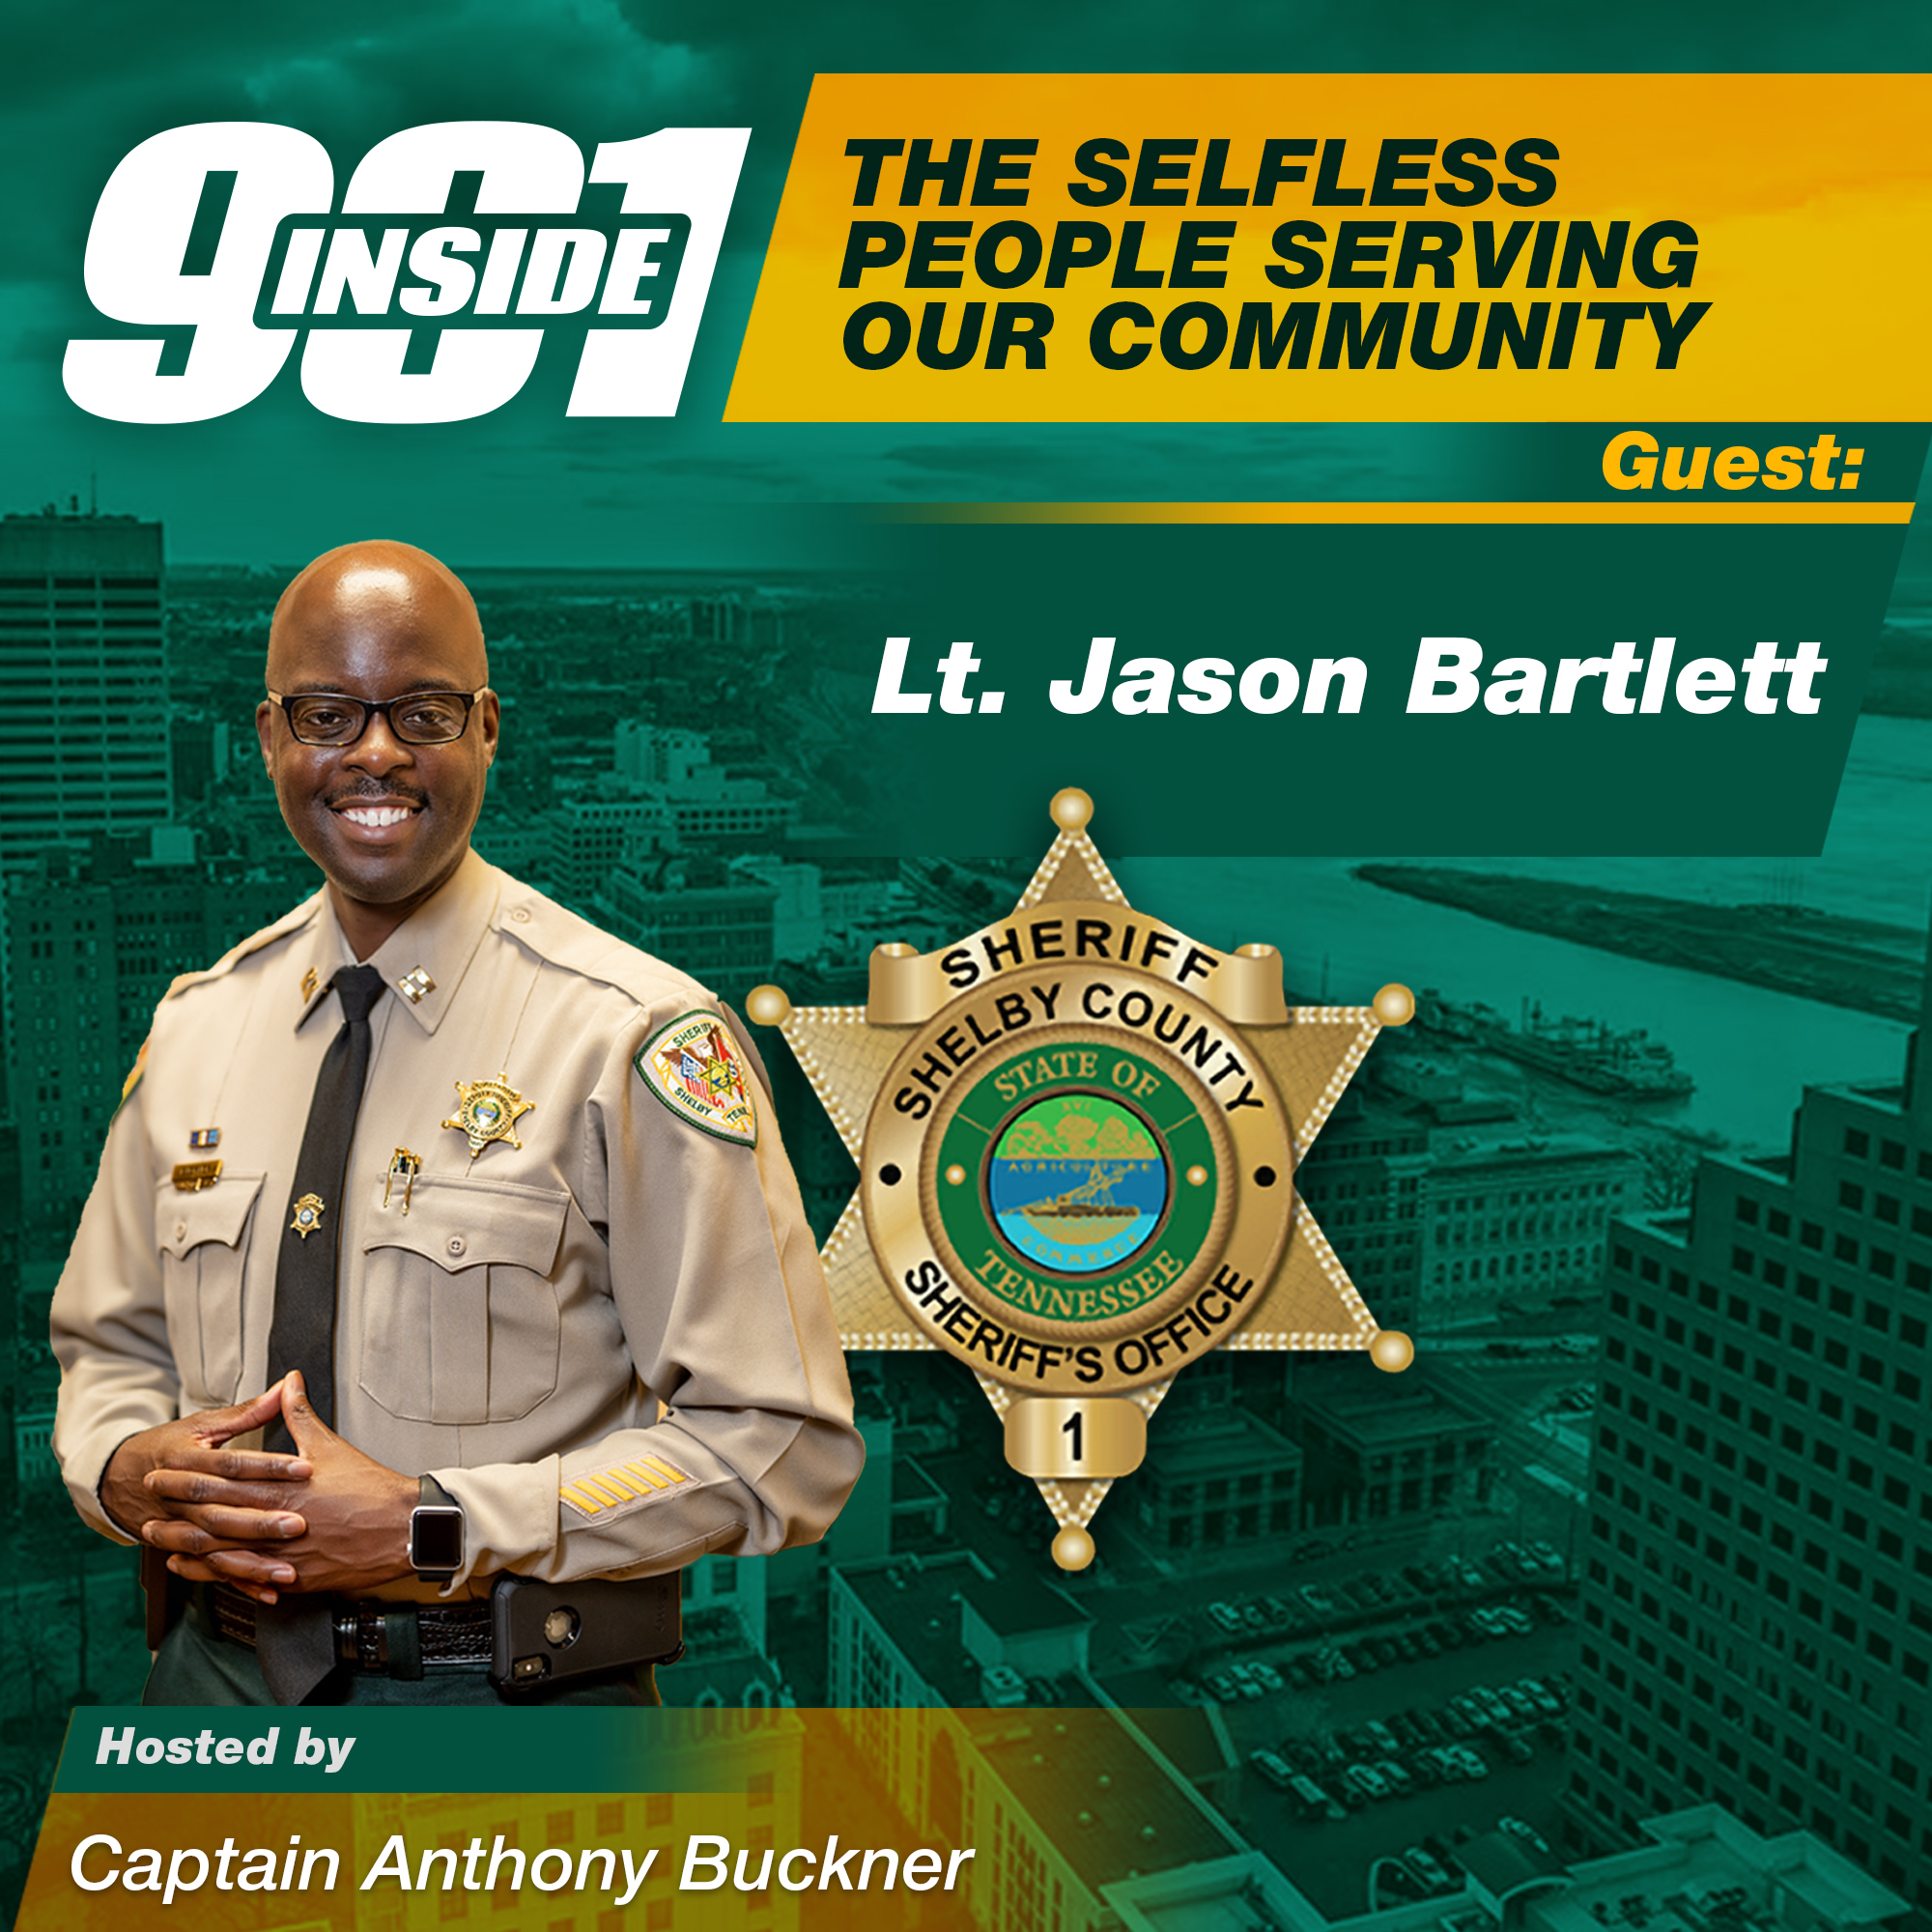 The Selfless People Serving Our Community w/Director Jason Bartlett l Inside 901 Podcast l KUDZUKIAN